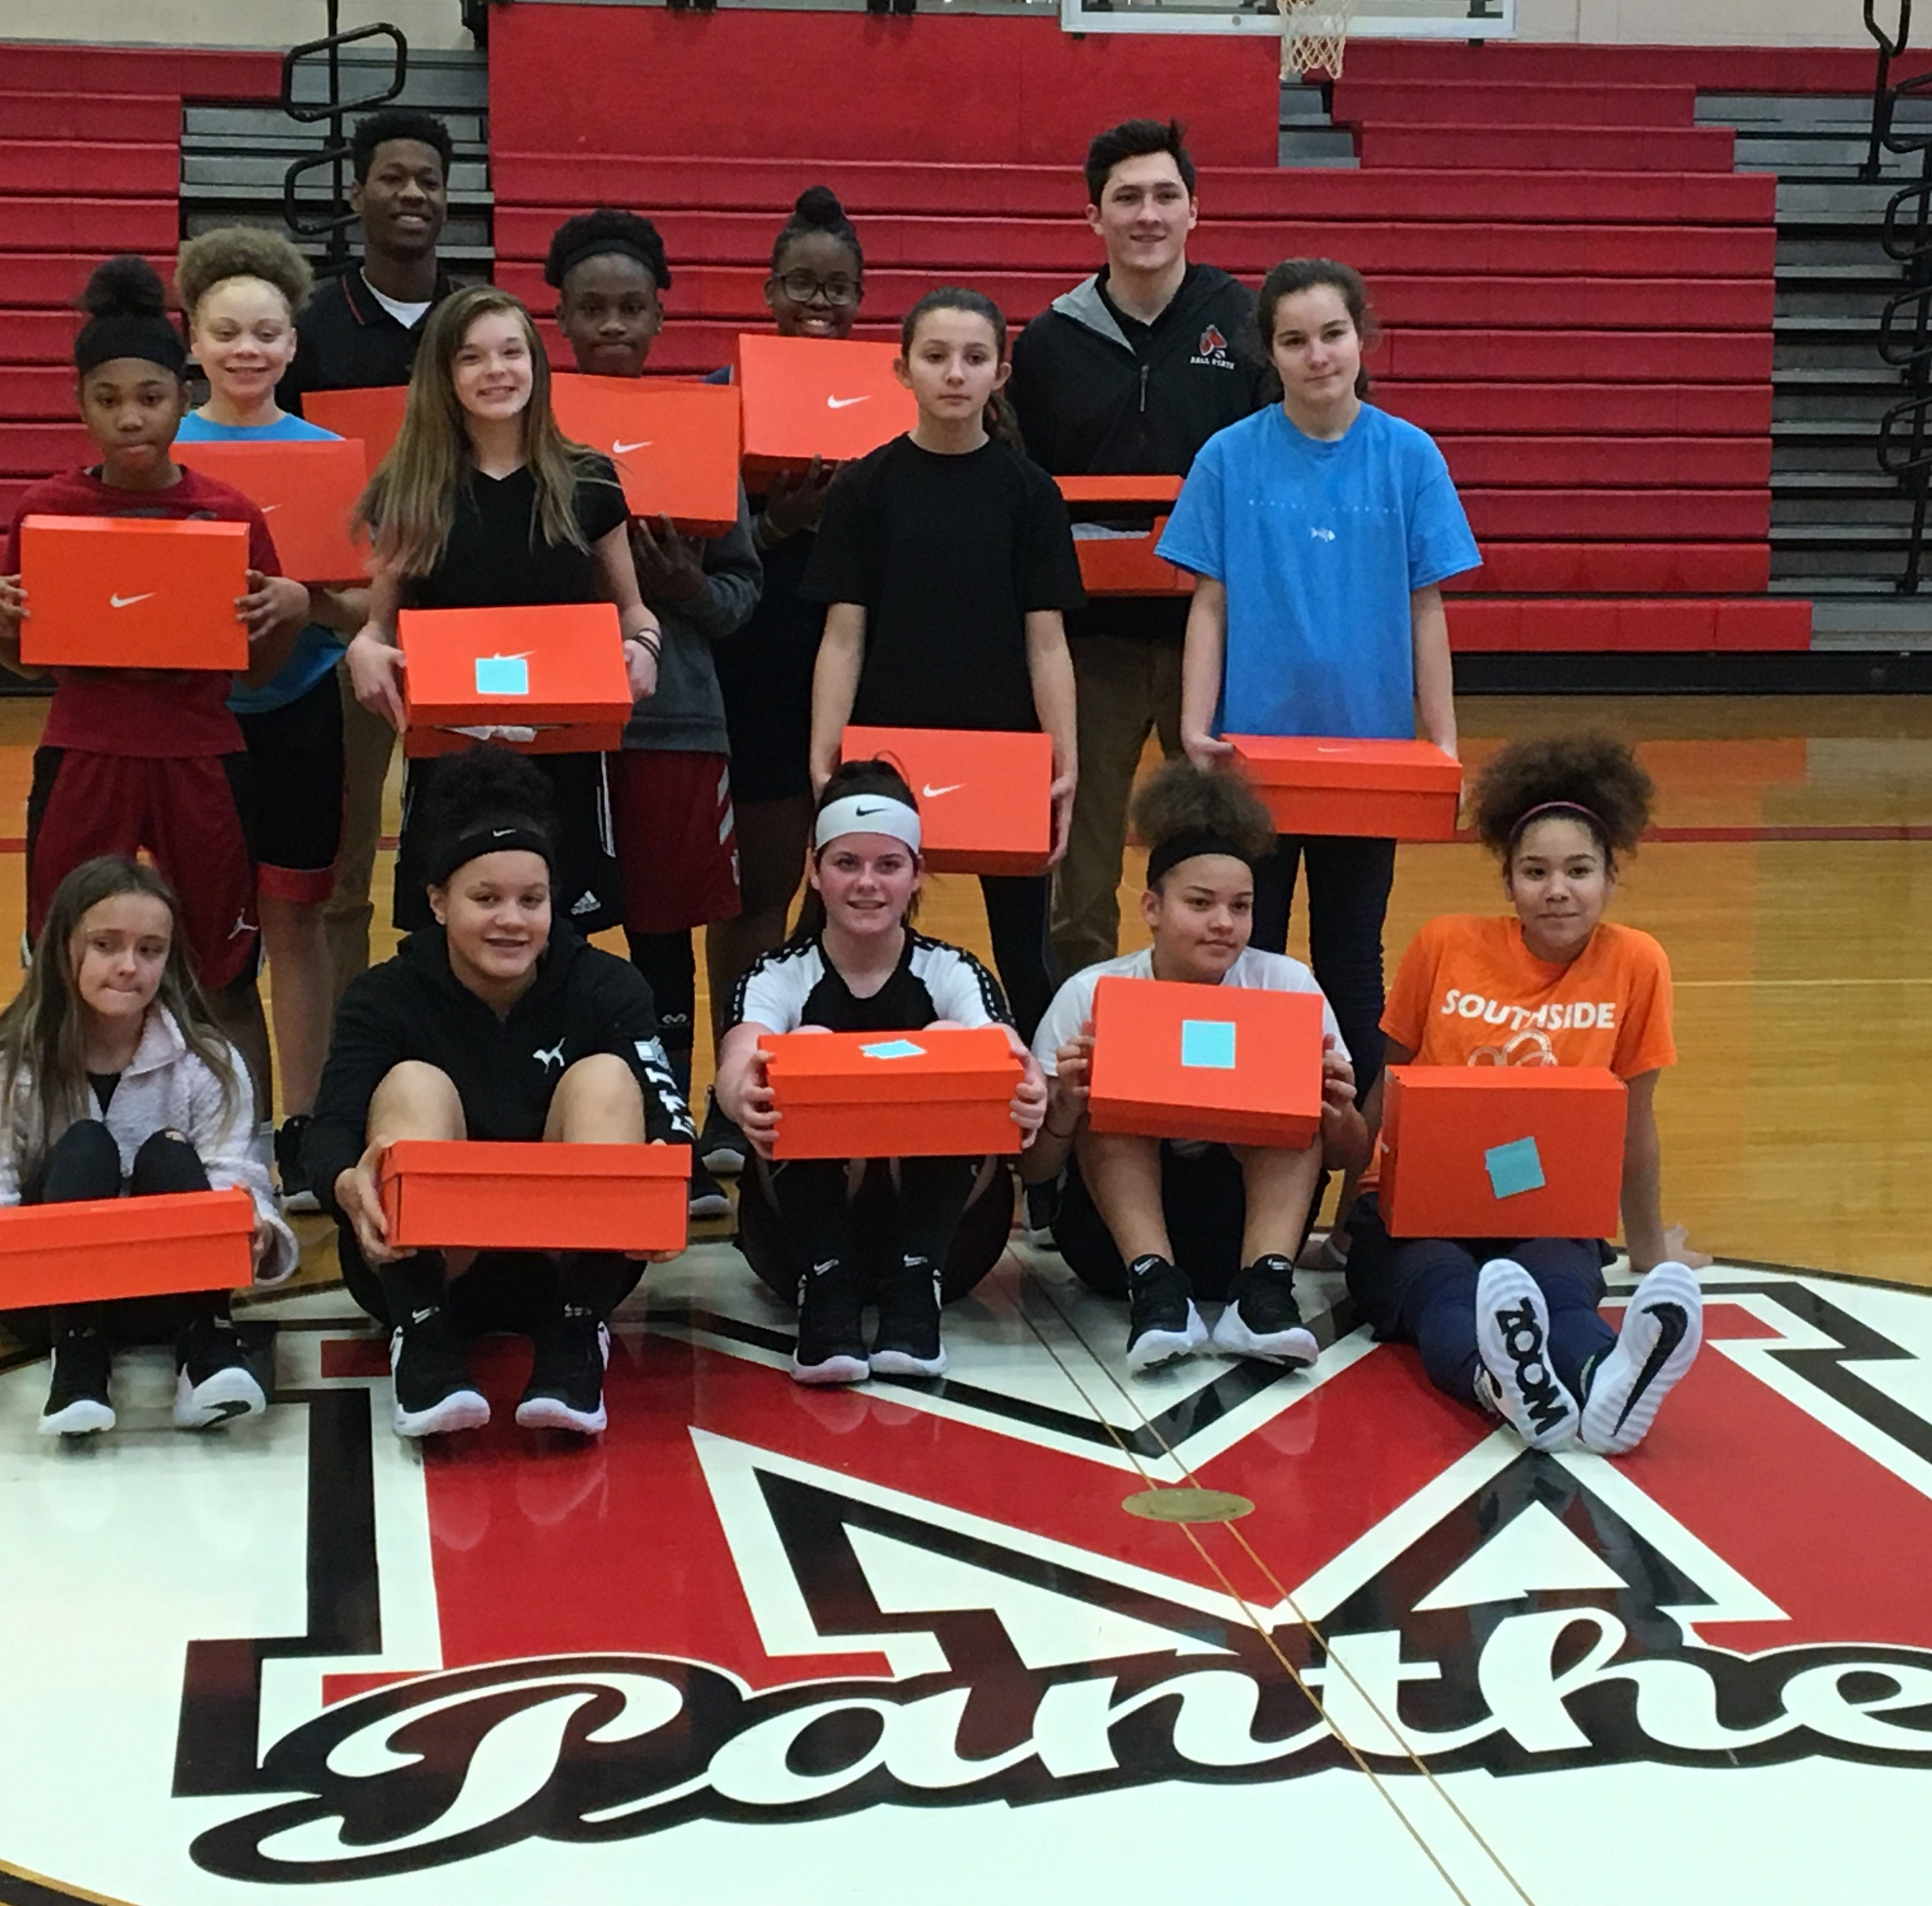 Ball State group surprises Southside girls basketball teams with new shoes